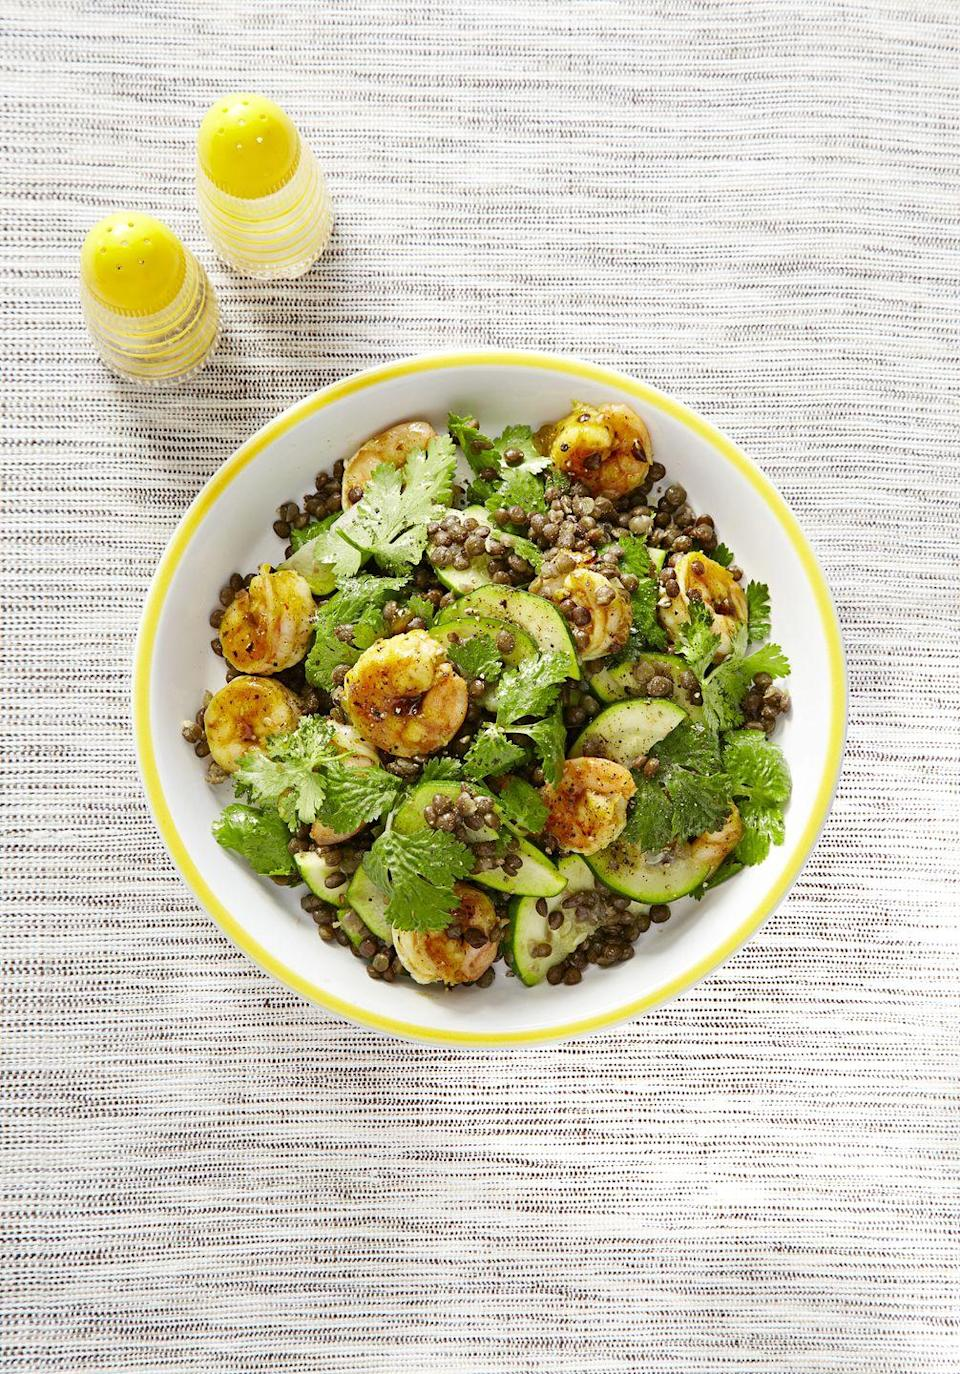 """<p>Let's take a moment to appreciate lentils — they are high in iron and fiber, affordable and versatile. Also, they taste absolutely incredible in this spiced shrimp salad. </p><p><em><a href=""""https://www.goodhousekeeping.com/food-recipes/a1509/chutney-glazed-shrimp-lentils-recipe-ghk0415/"""" rel=""""nofollow noopener"""" target=""""_blank"""" data-ylk=""""slk:Get the recipe for Chutney-Glazed Shrimp with Lentils »"""" class=""""link rapid-noclick-resp"""">Get the recipe for Chutney-Glazed Shrimp with Lentils »</a></em> </p>"""